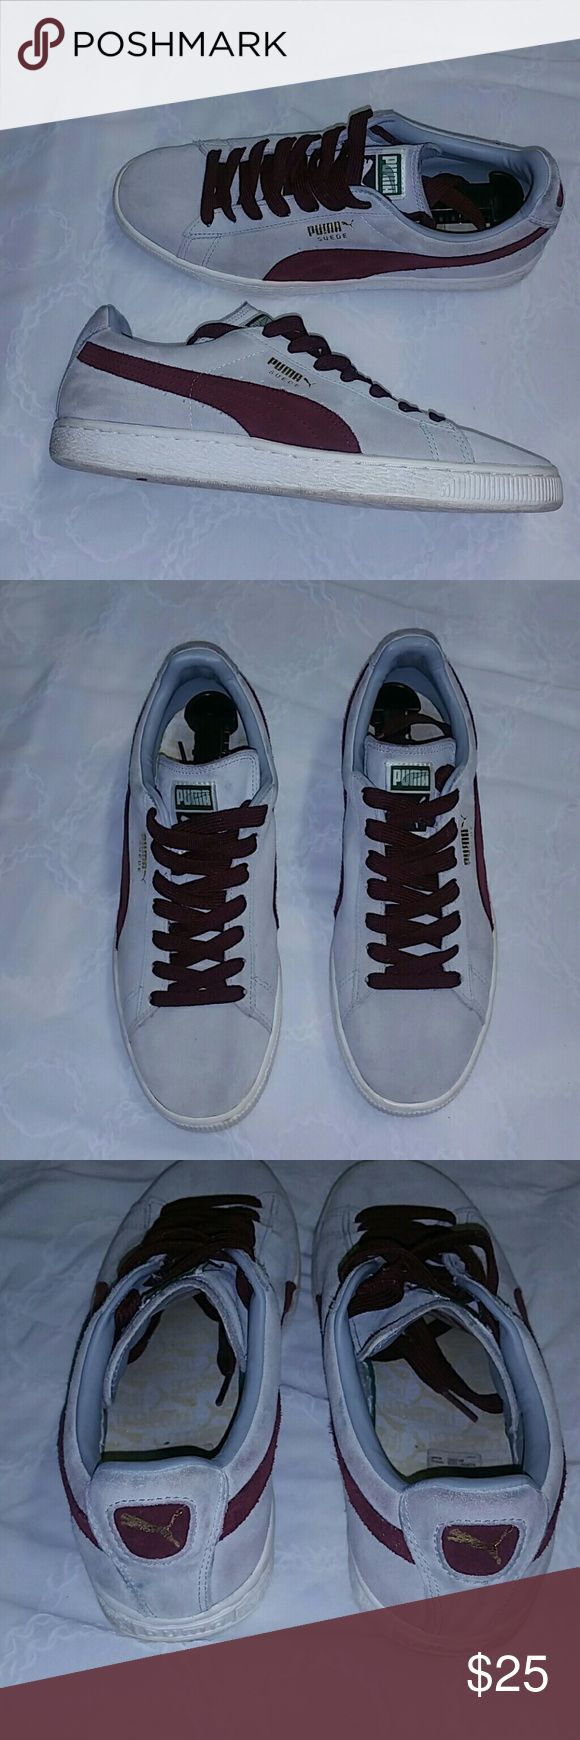 Men's PUMA Suede Classic Sneakers, PRE-OWNED Men's Gray and Burgundy PUMA Suede Classic Sneakers Gently worn, very comfortable. Have little dirt (see pics), size 9.5 Puma Shoes Sneakers